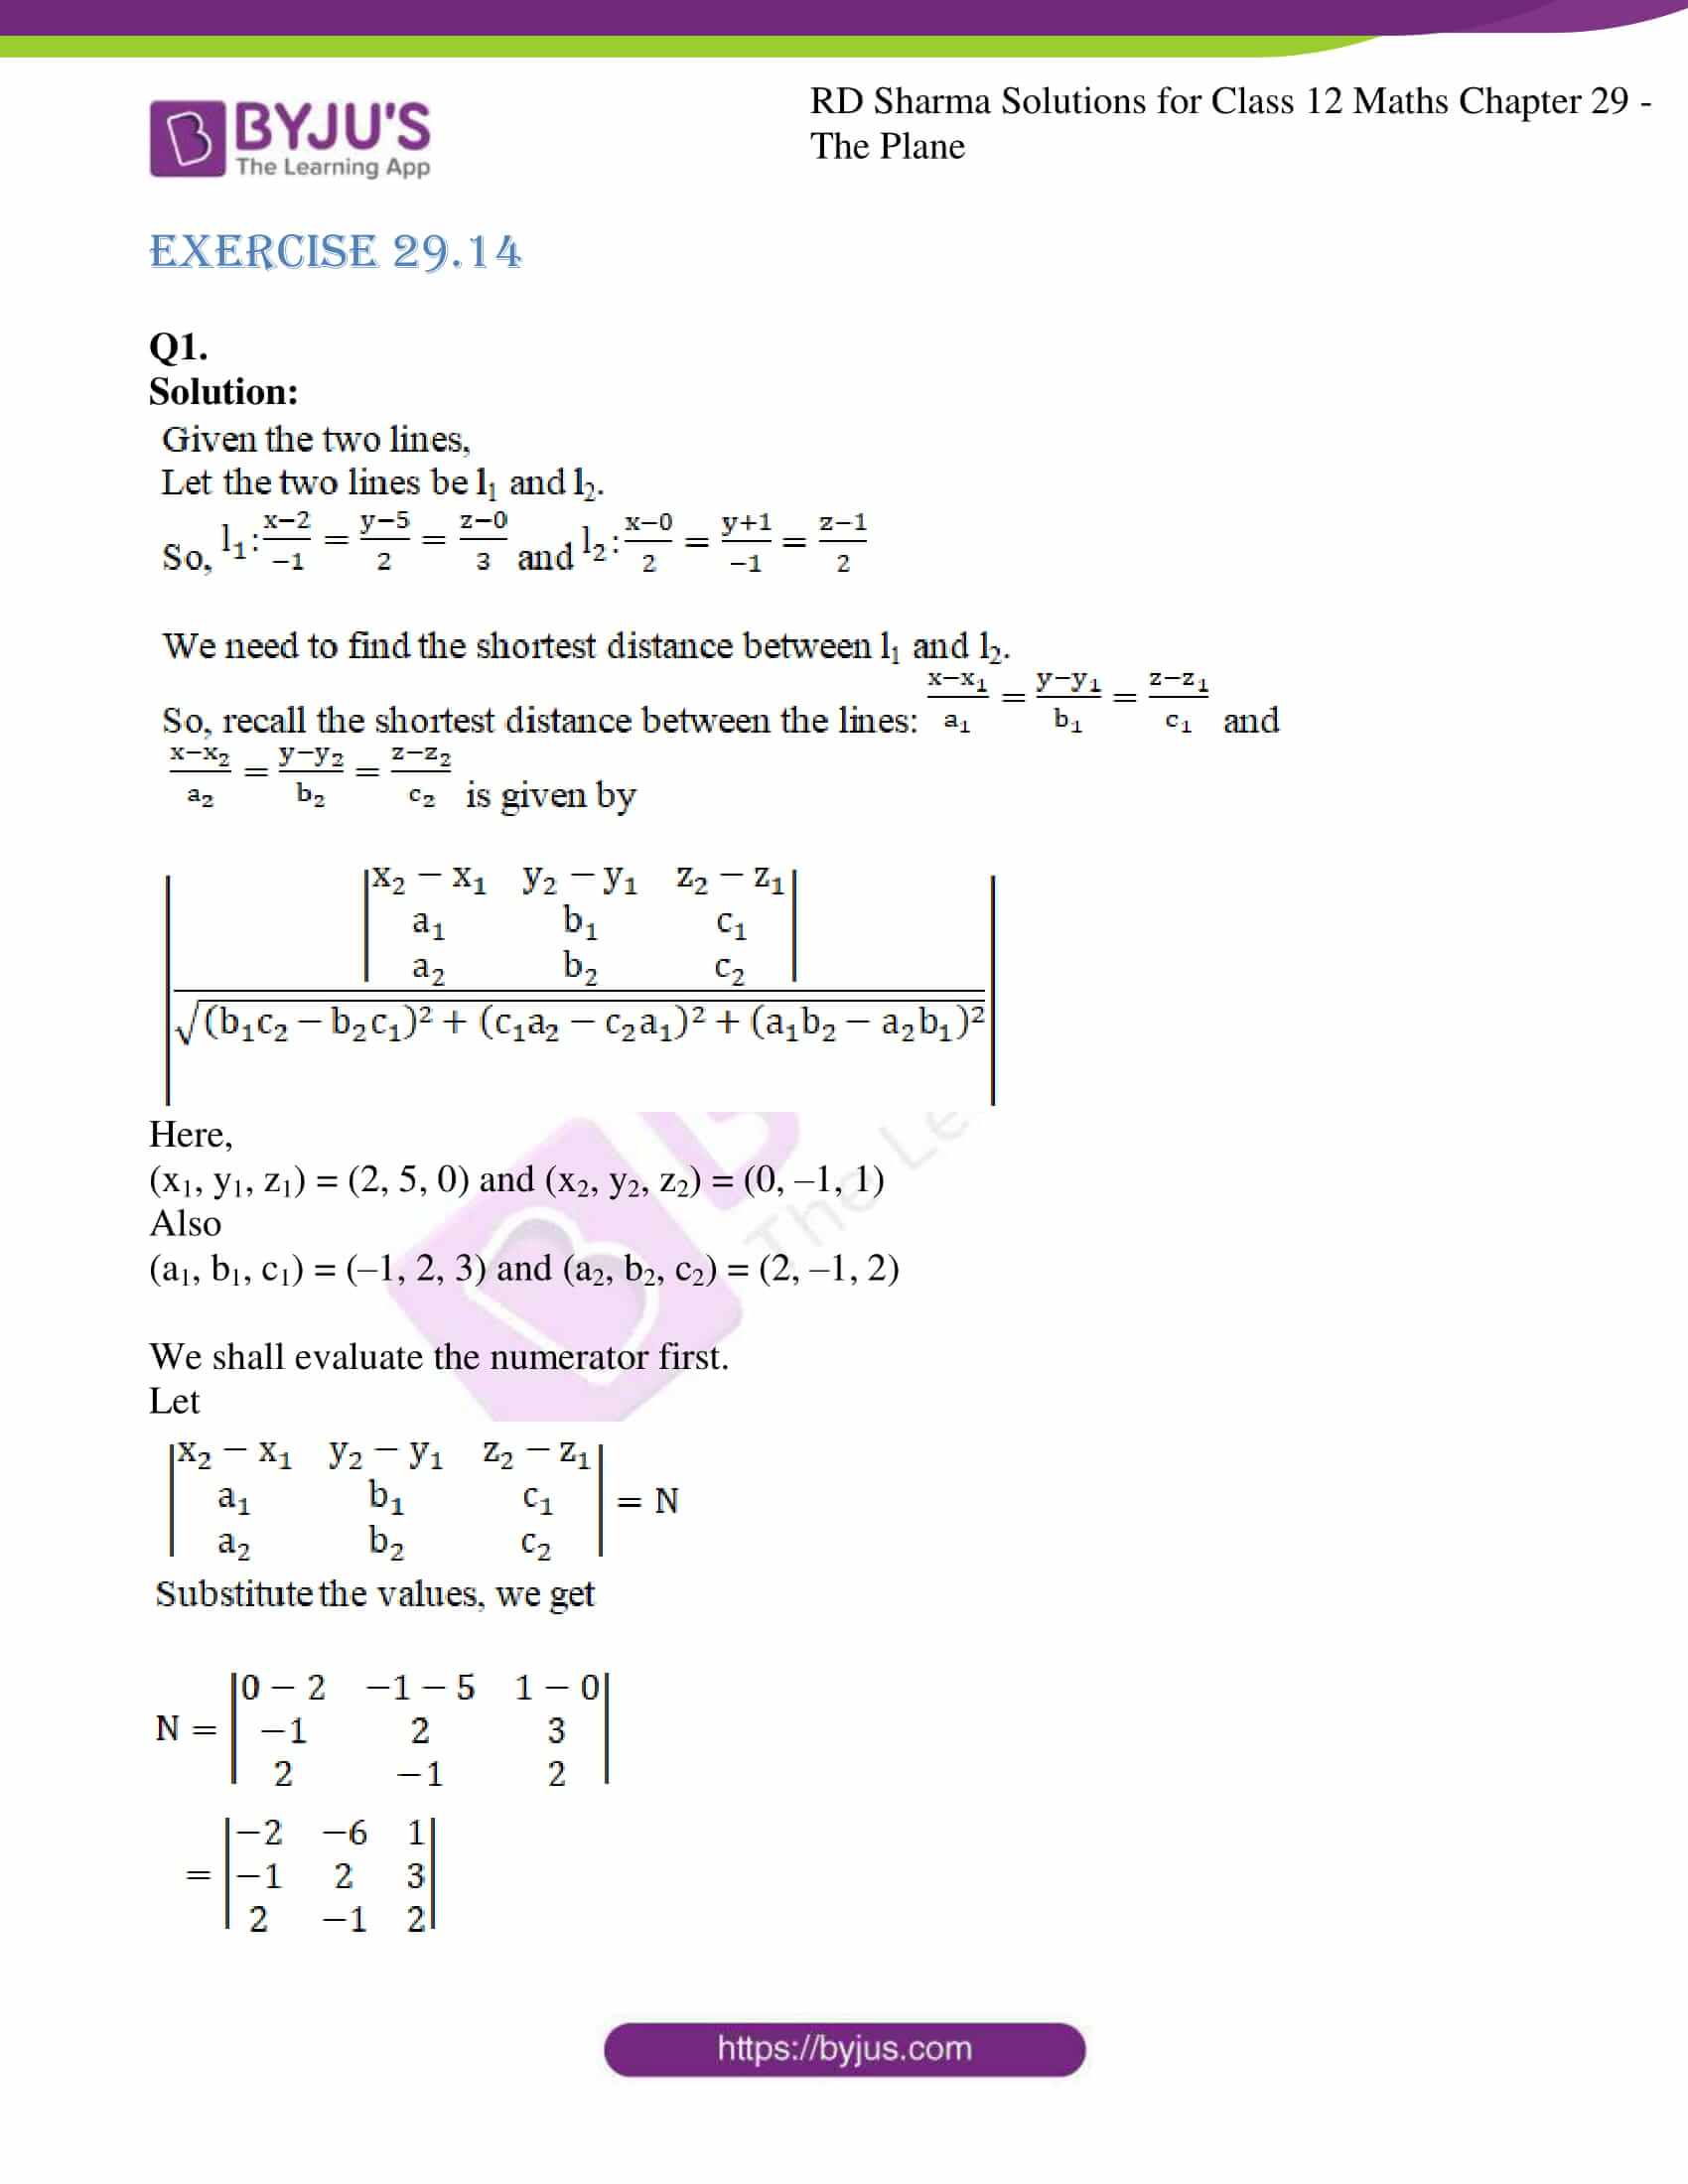 rd sharma solutions for class 12 maths chapter 29 ex 14 1